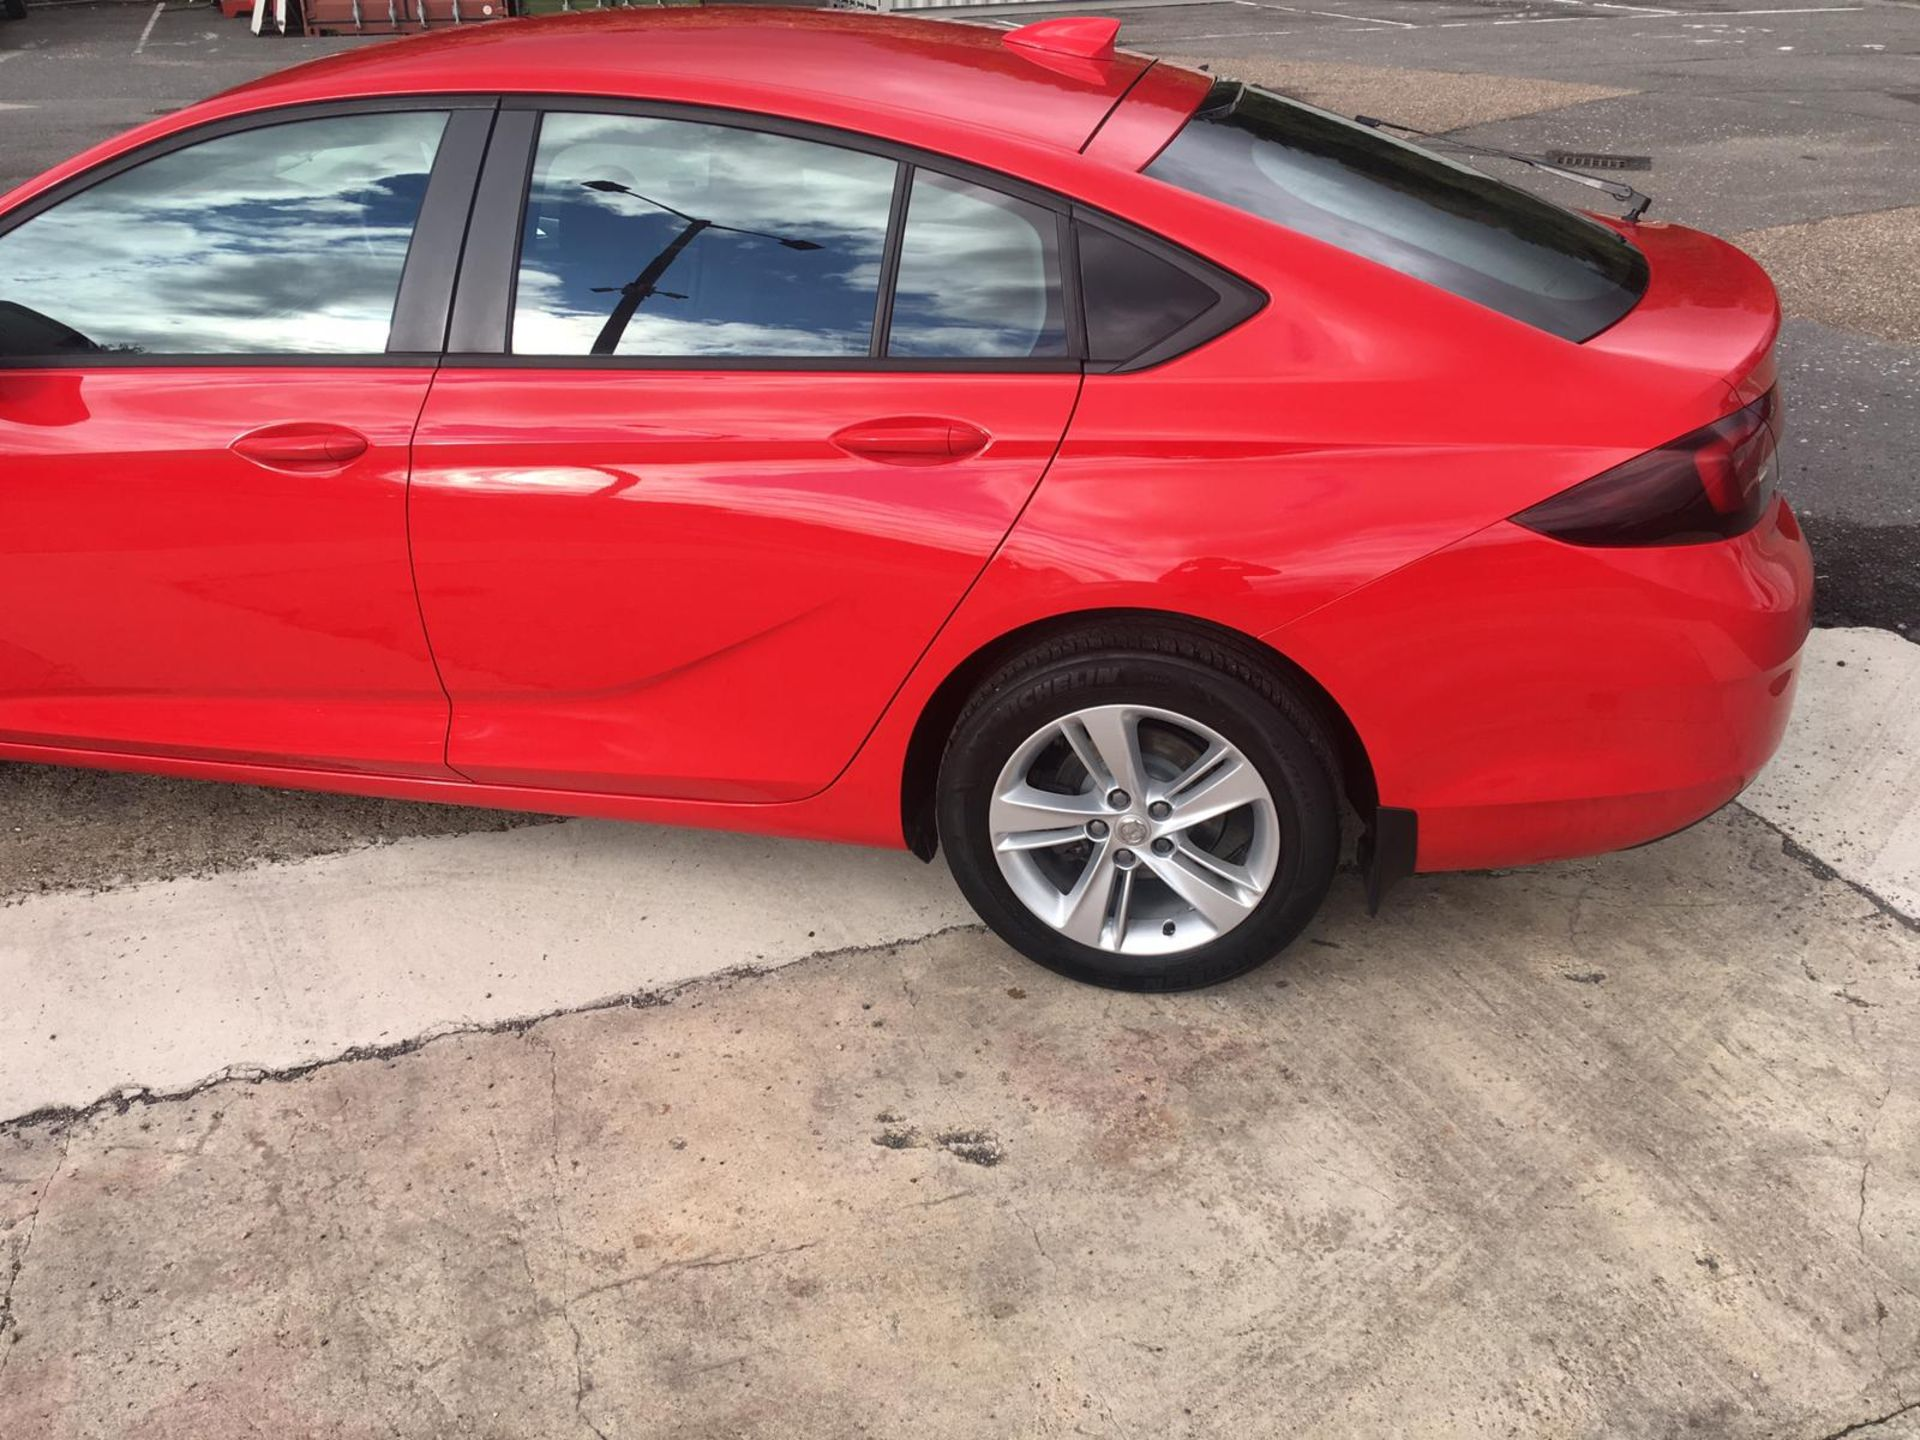 2018/18 REG VAUXHALL INSIGNIA DESIGN ECOTEC TURBO 1.6 DIESEL RED, SHOWING 0 FORMER KEEPERS *NO VAT* - Image 4 of 34